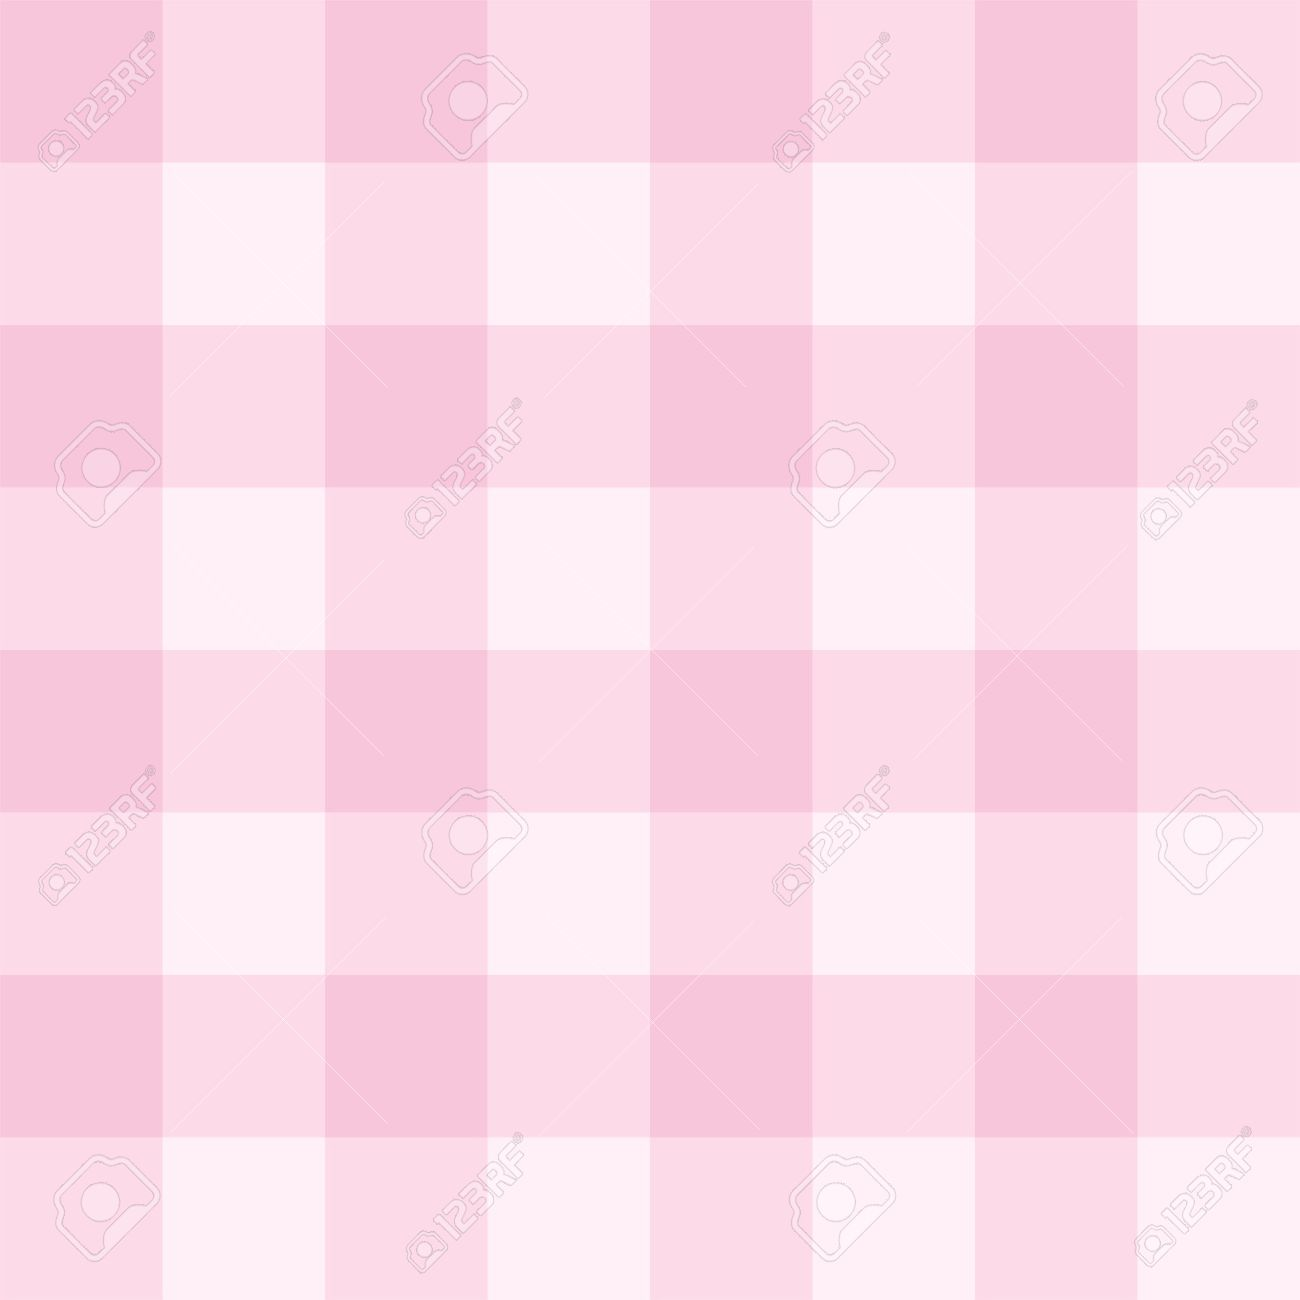 seamless sweet baby pink background - checkered pattern or grid